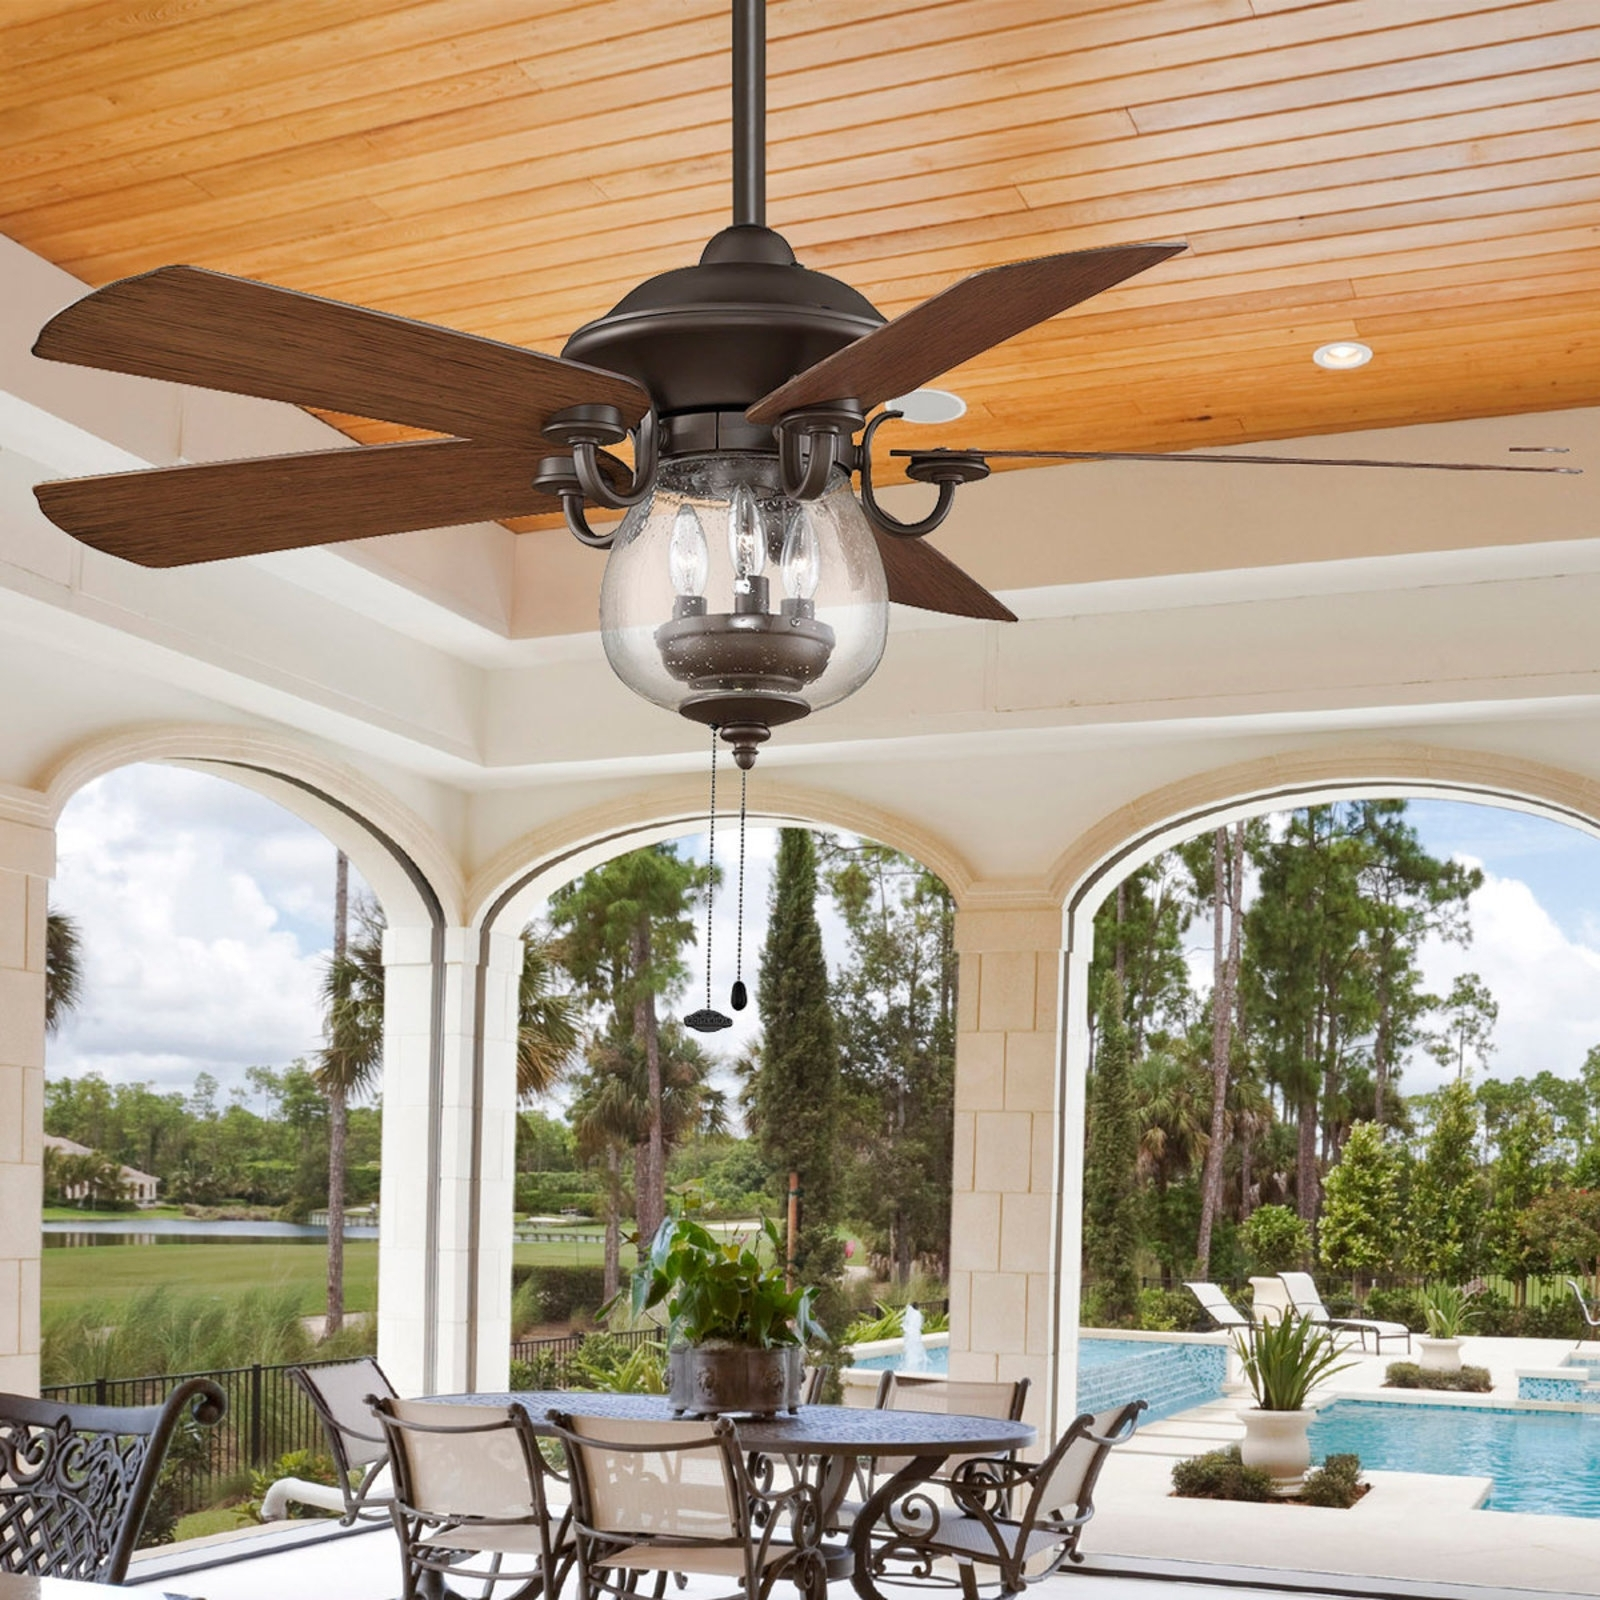 Outdoor Ceiling Fans – Design For Comfort Throughout Most Up To Date Outdoor Ceiling Fans With Motion Light (View 8 of 20)